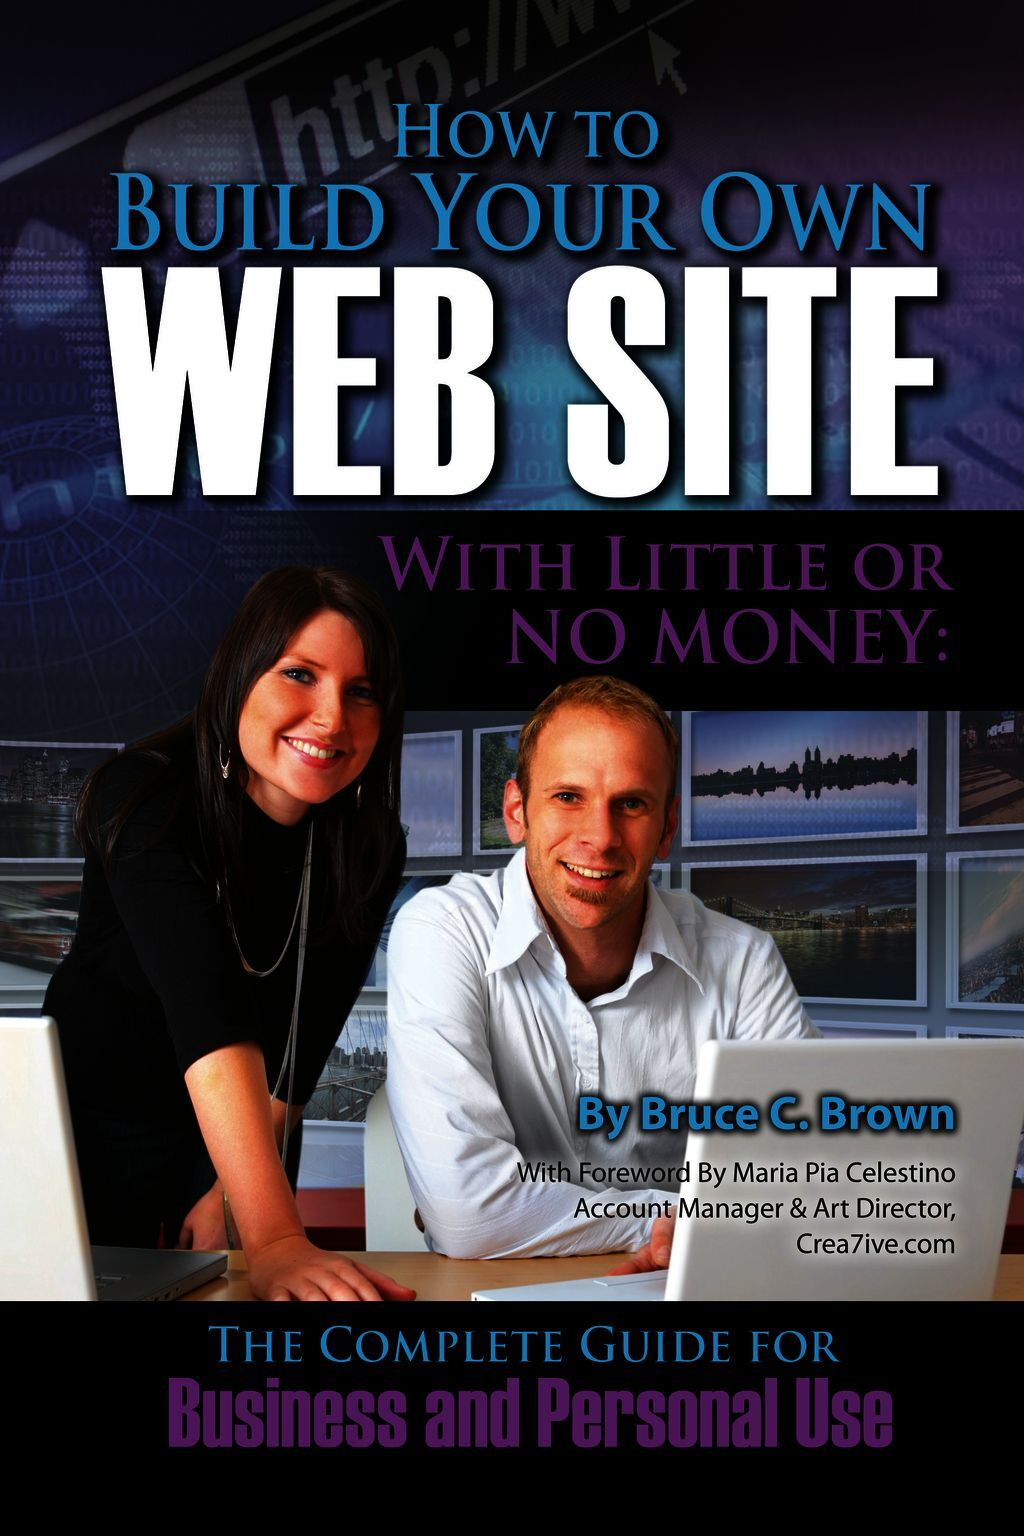 How To Build Your Own Website With Little Or No Money